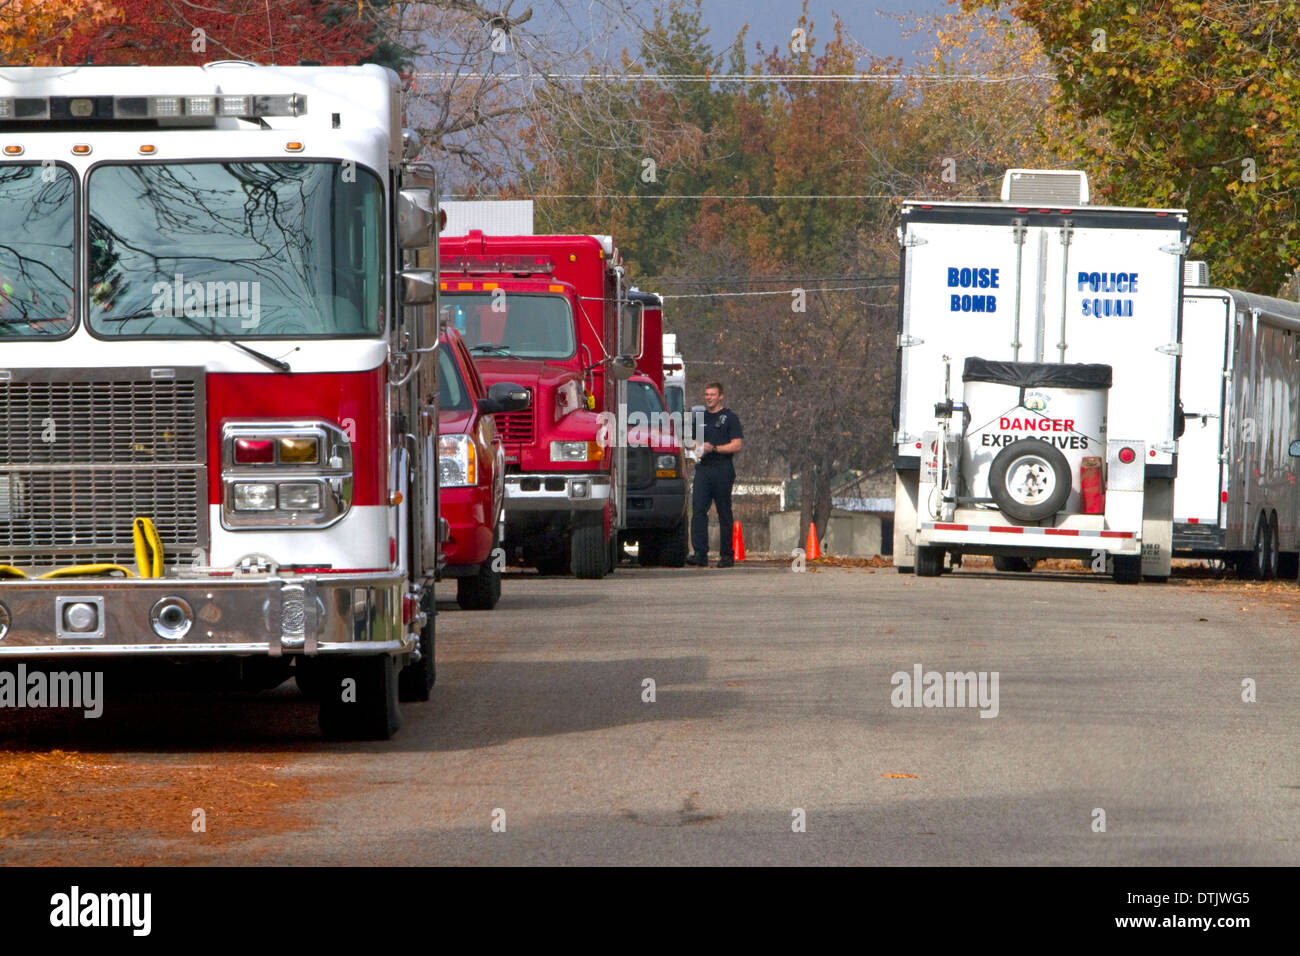 Fire engines and bomb units at the scene of an explosive materials incident in Boise, Idaho, USA. - Stock Image